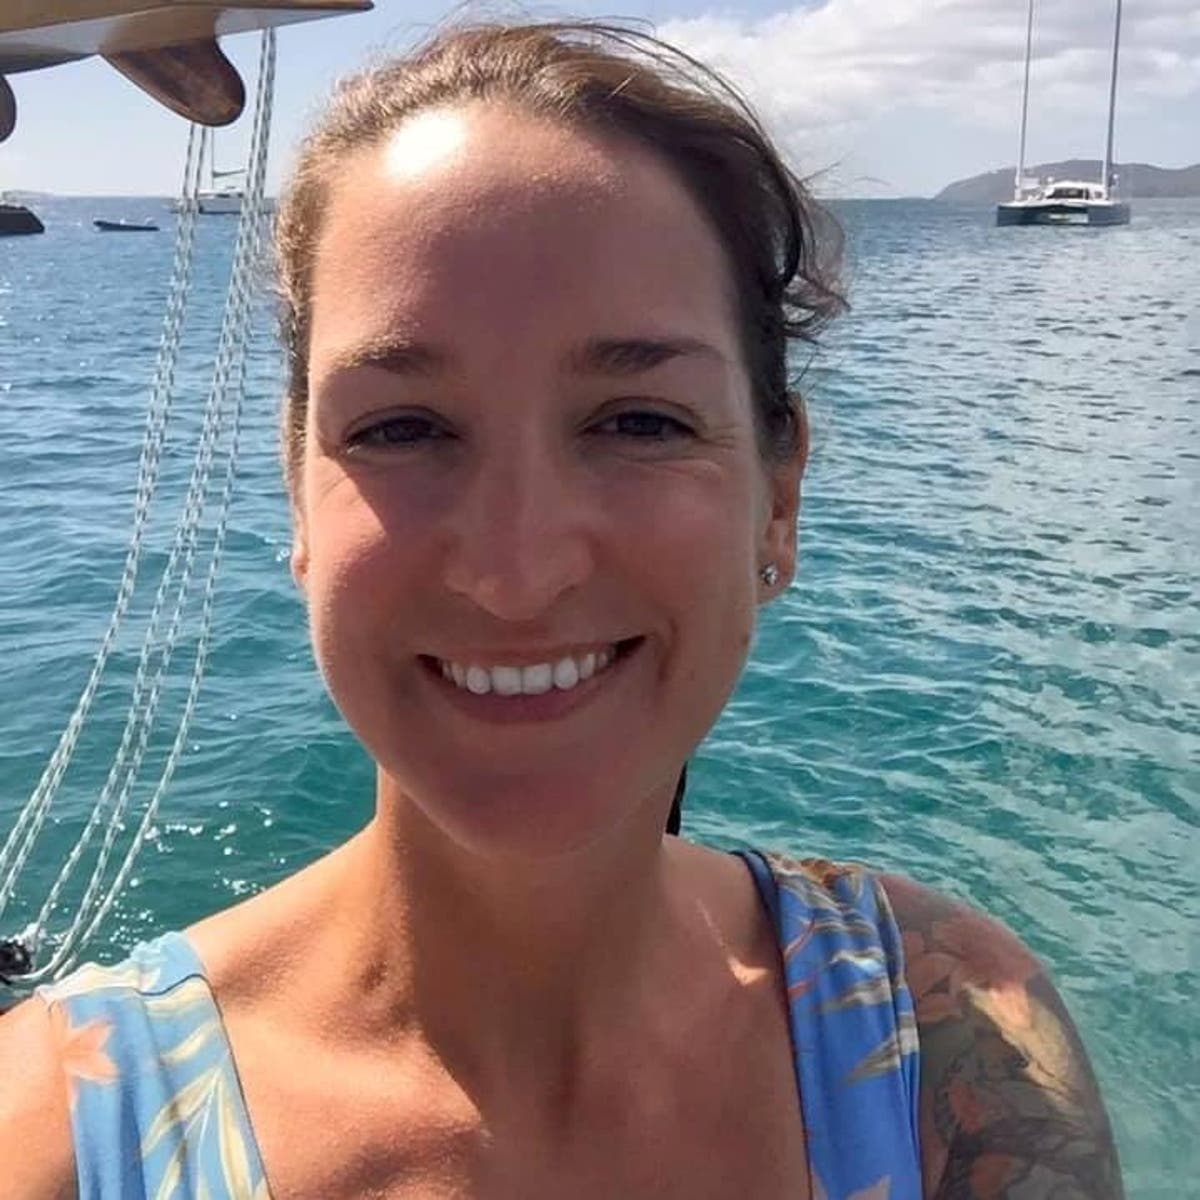 What we know about Sarm Heslop, the missing British woman in Caribbean